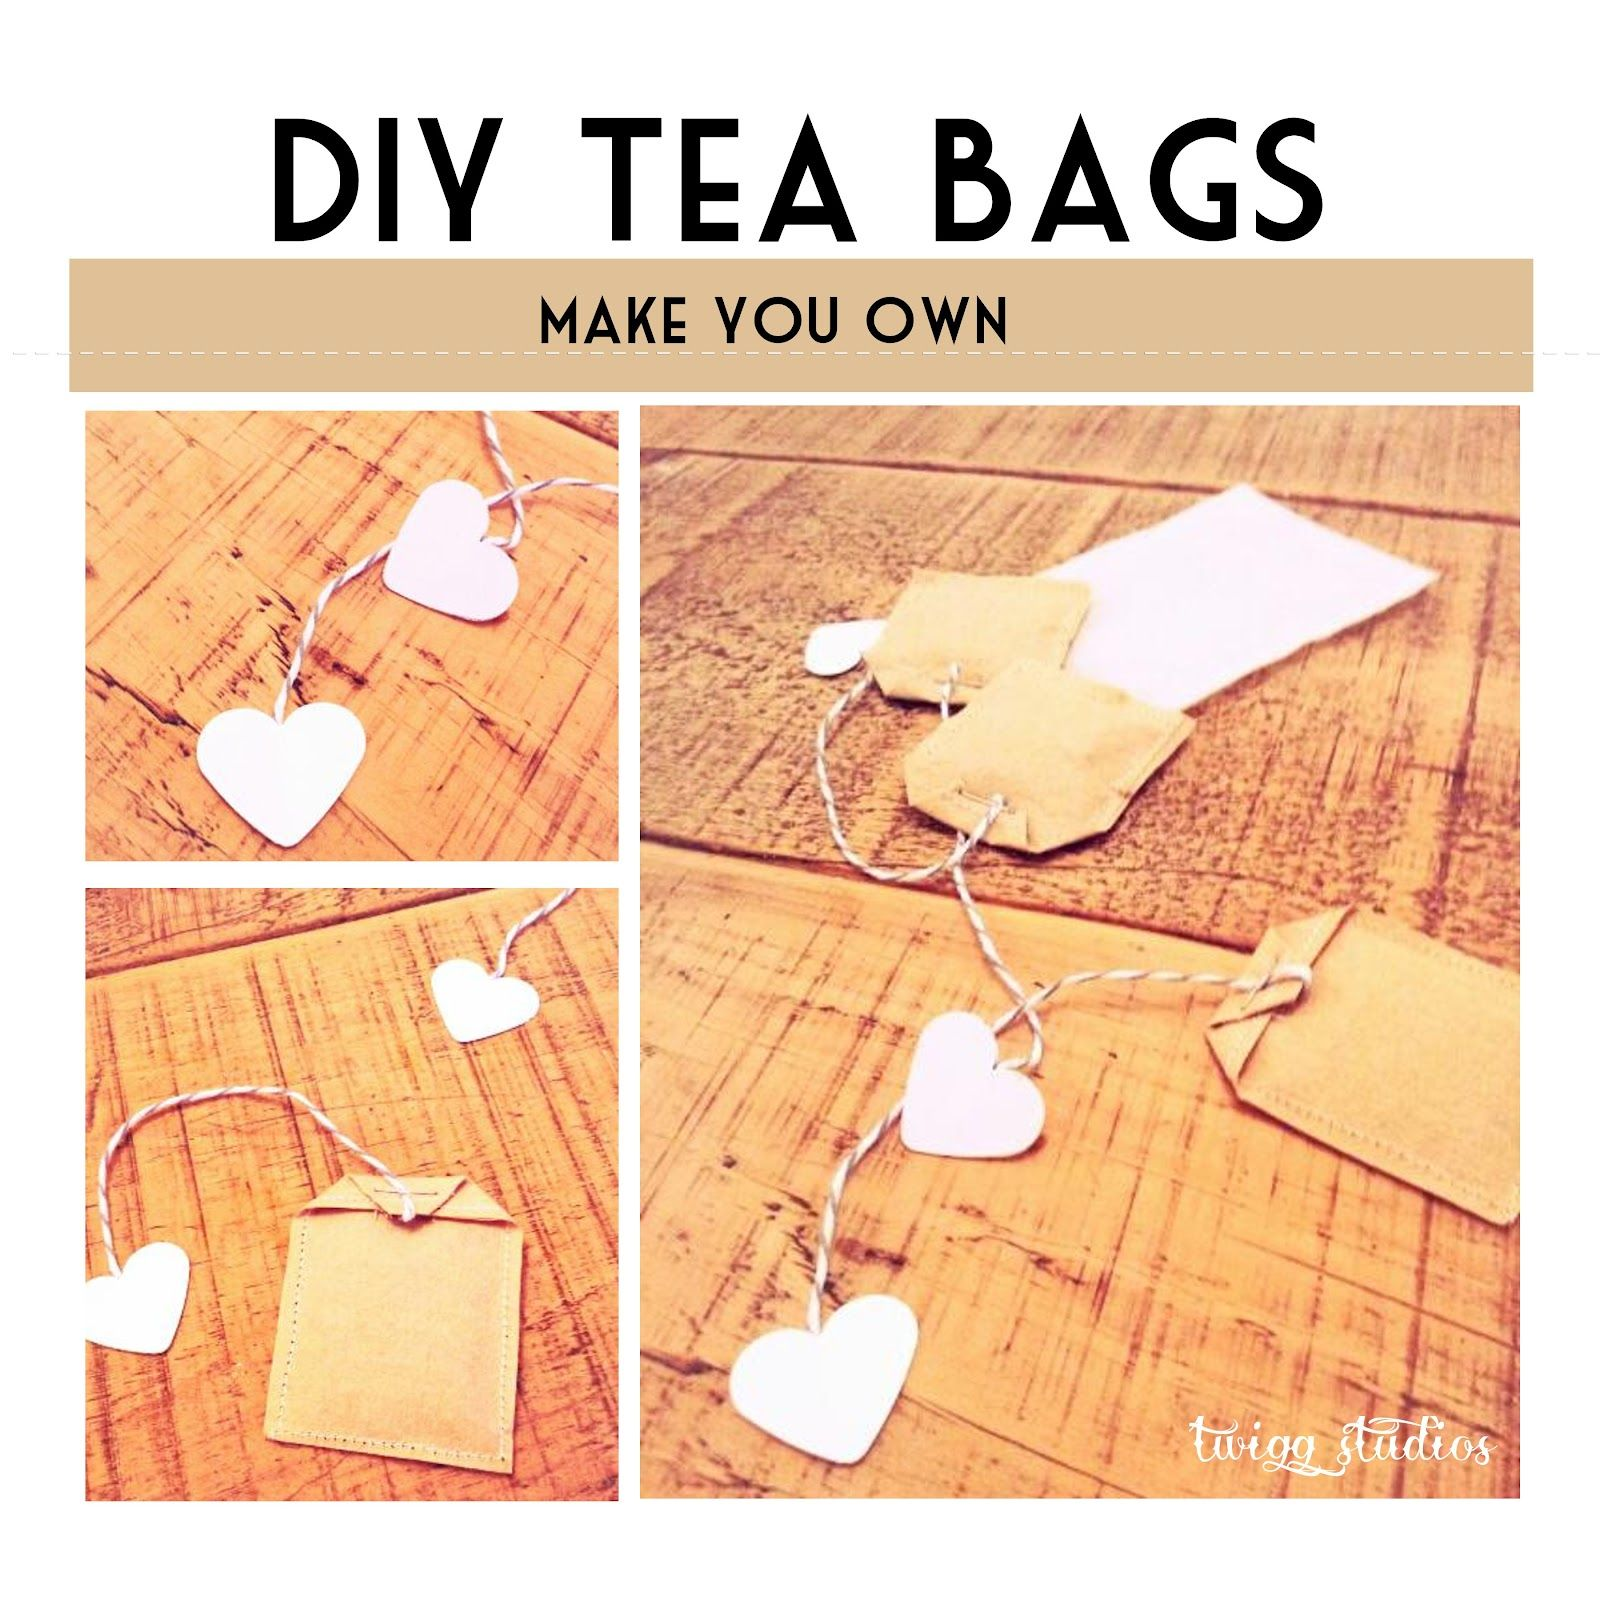 homemade tea bags - nice gift idea - not so practical for everyday use...plus, why not use a tea infuser??